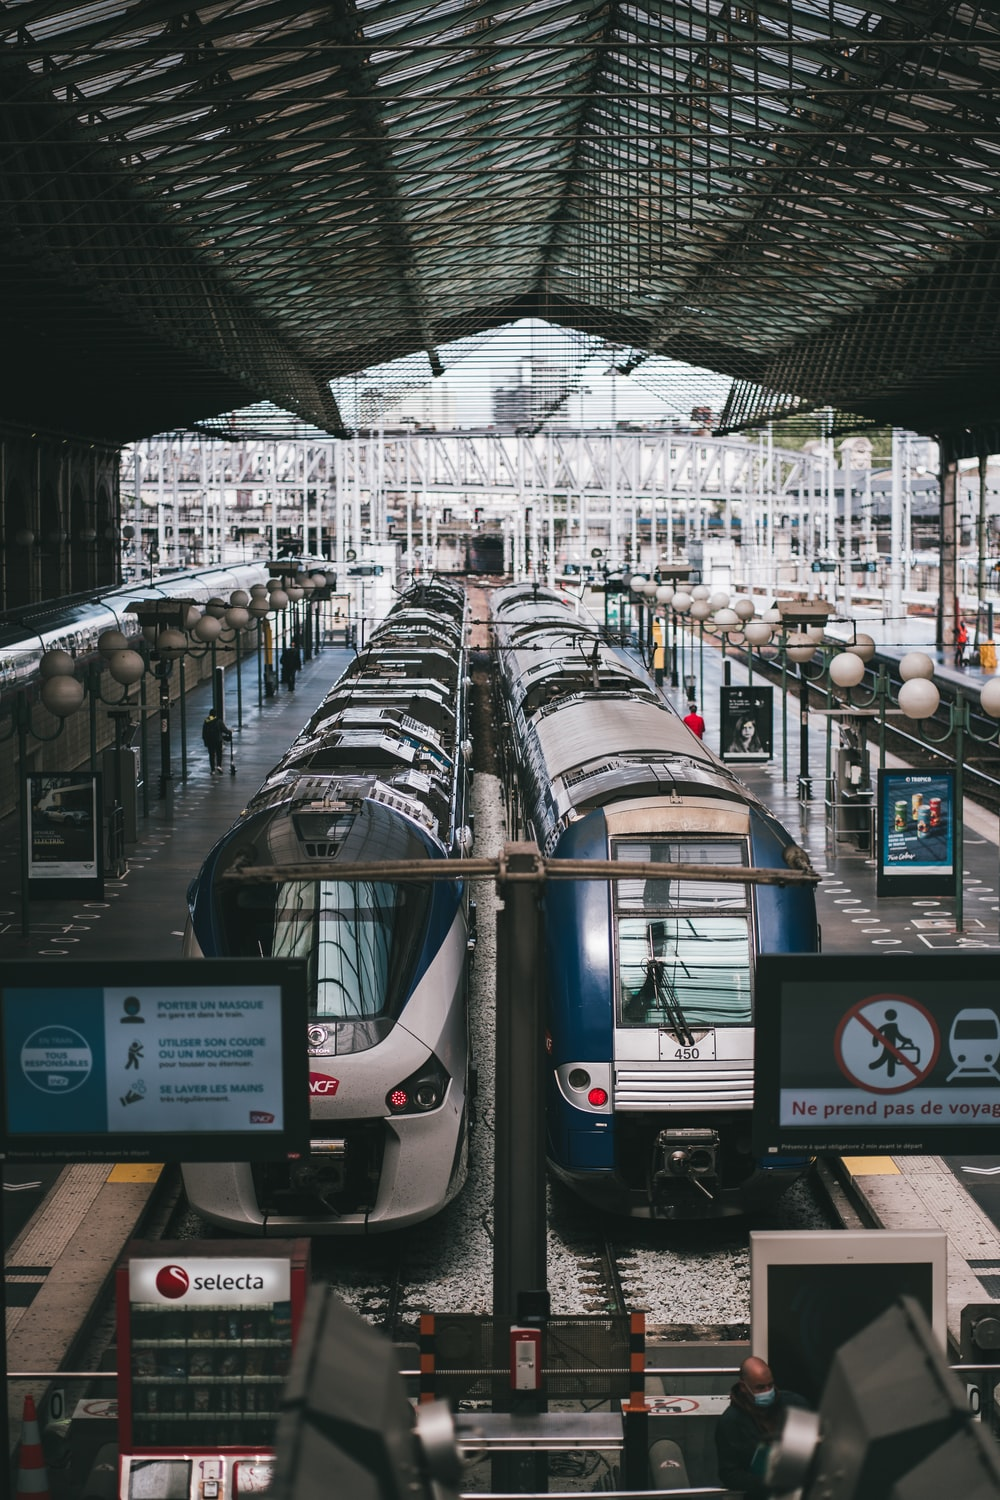 black and gray train in train station